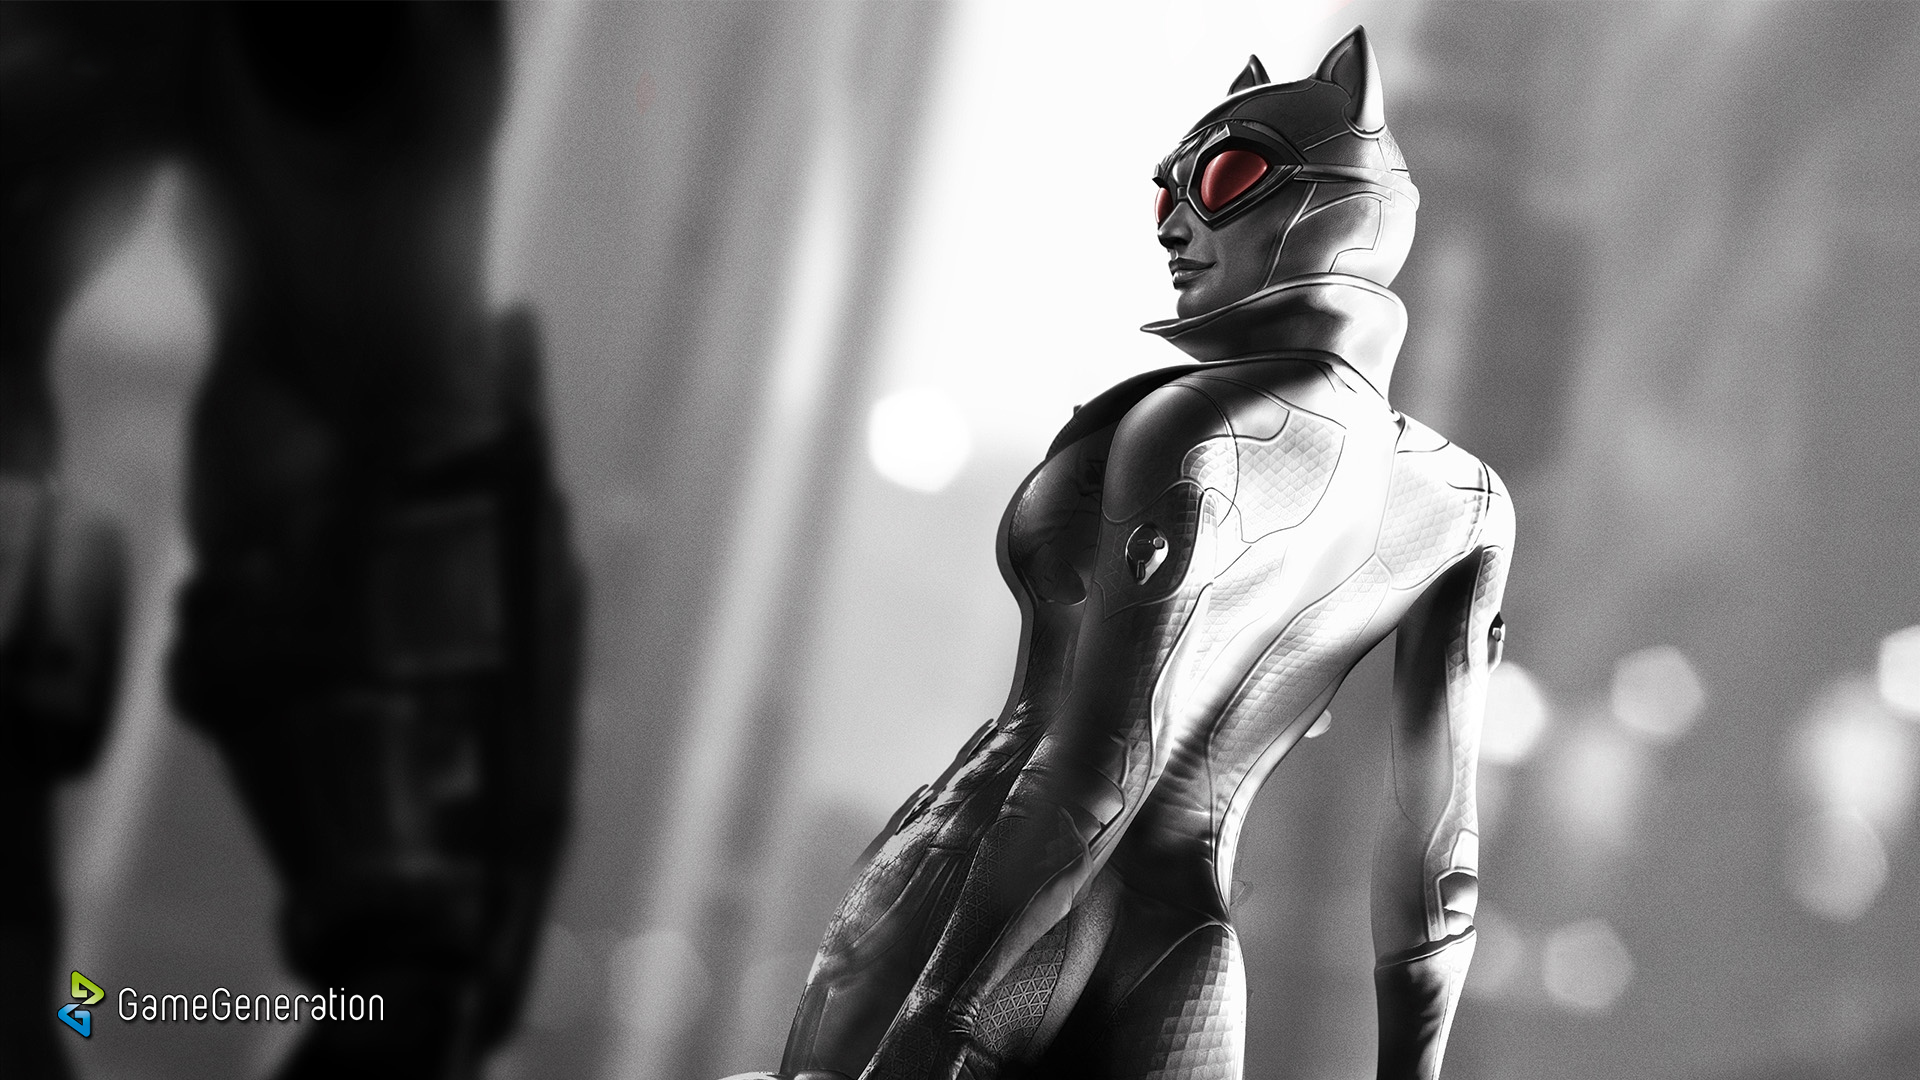 Batman Arkham Asylum 720p Ps3 Wallpaper 1080p Wallpaper